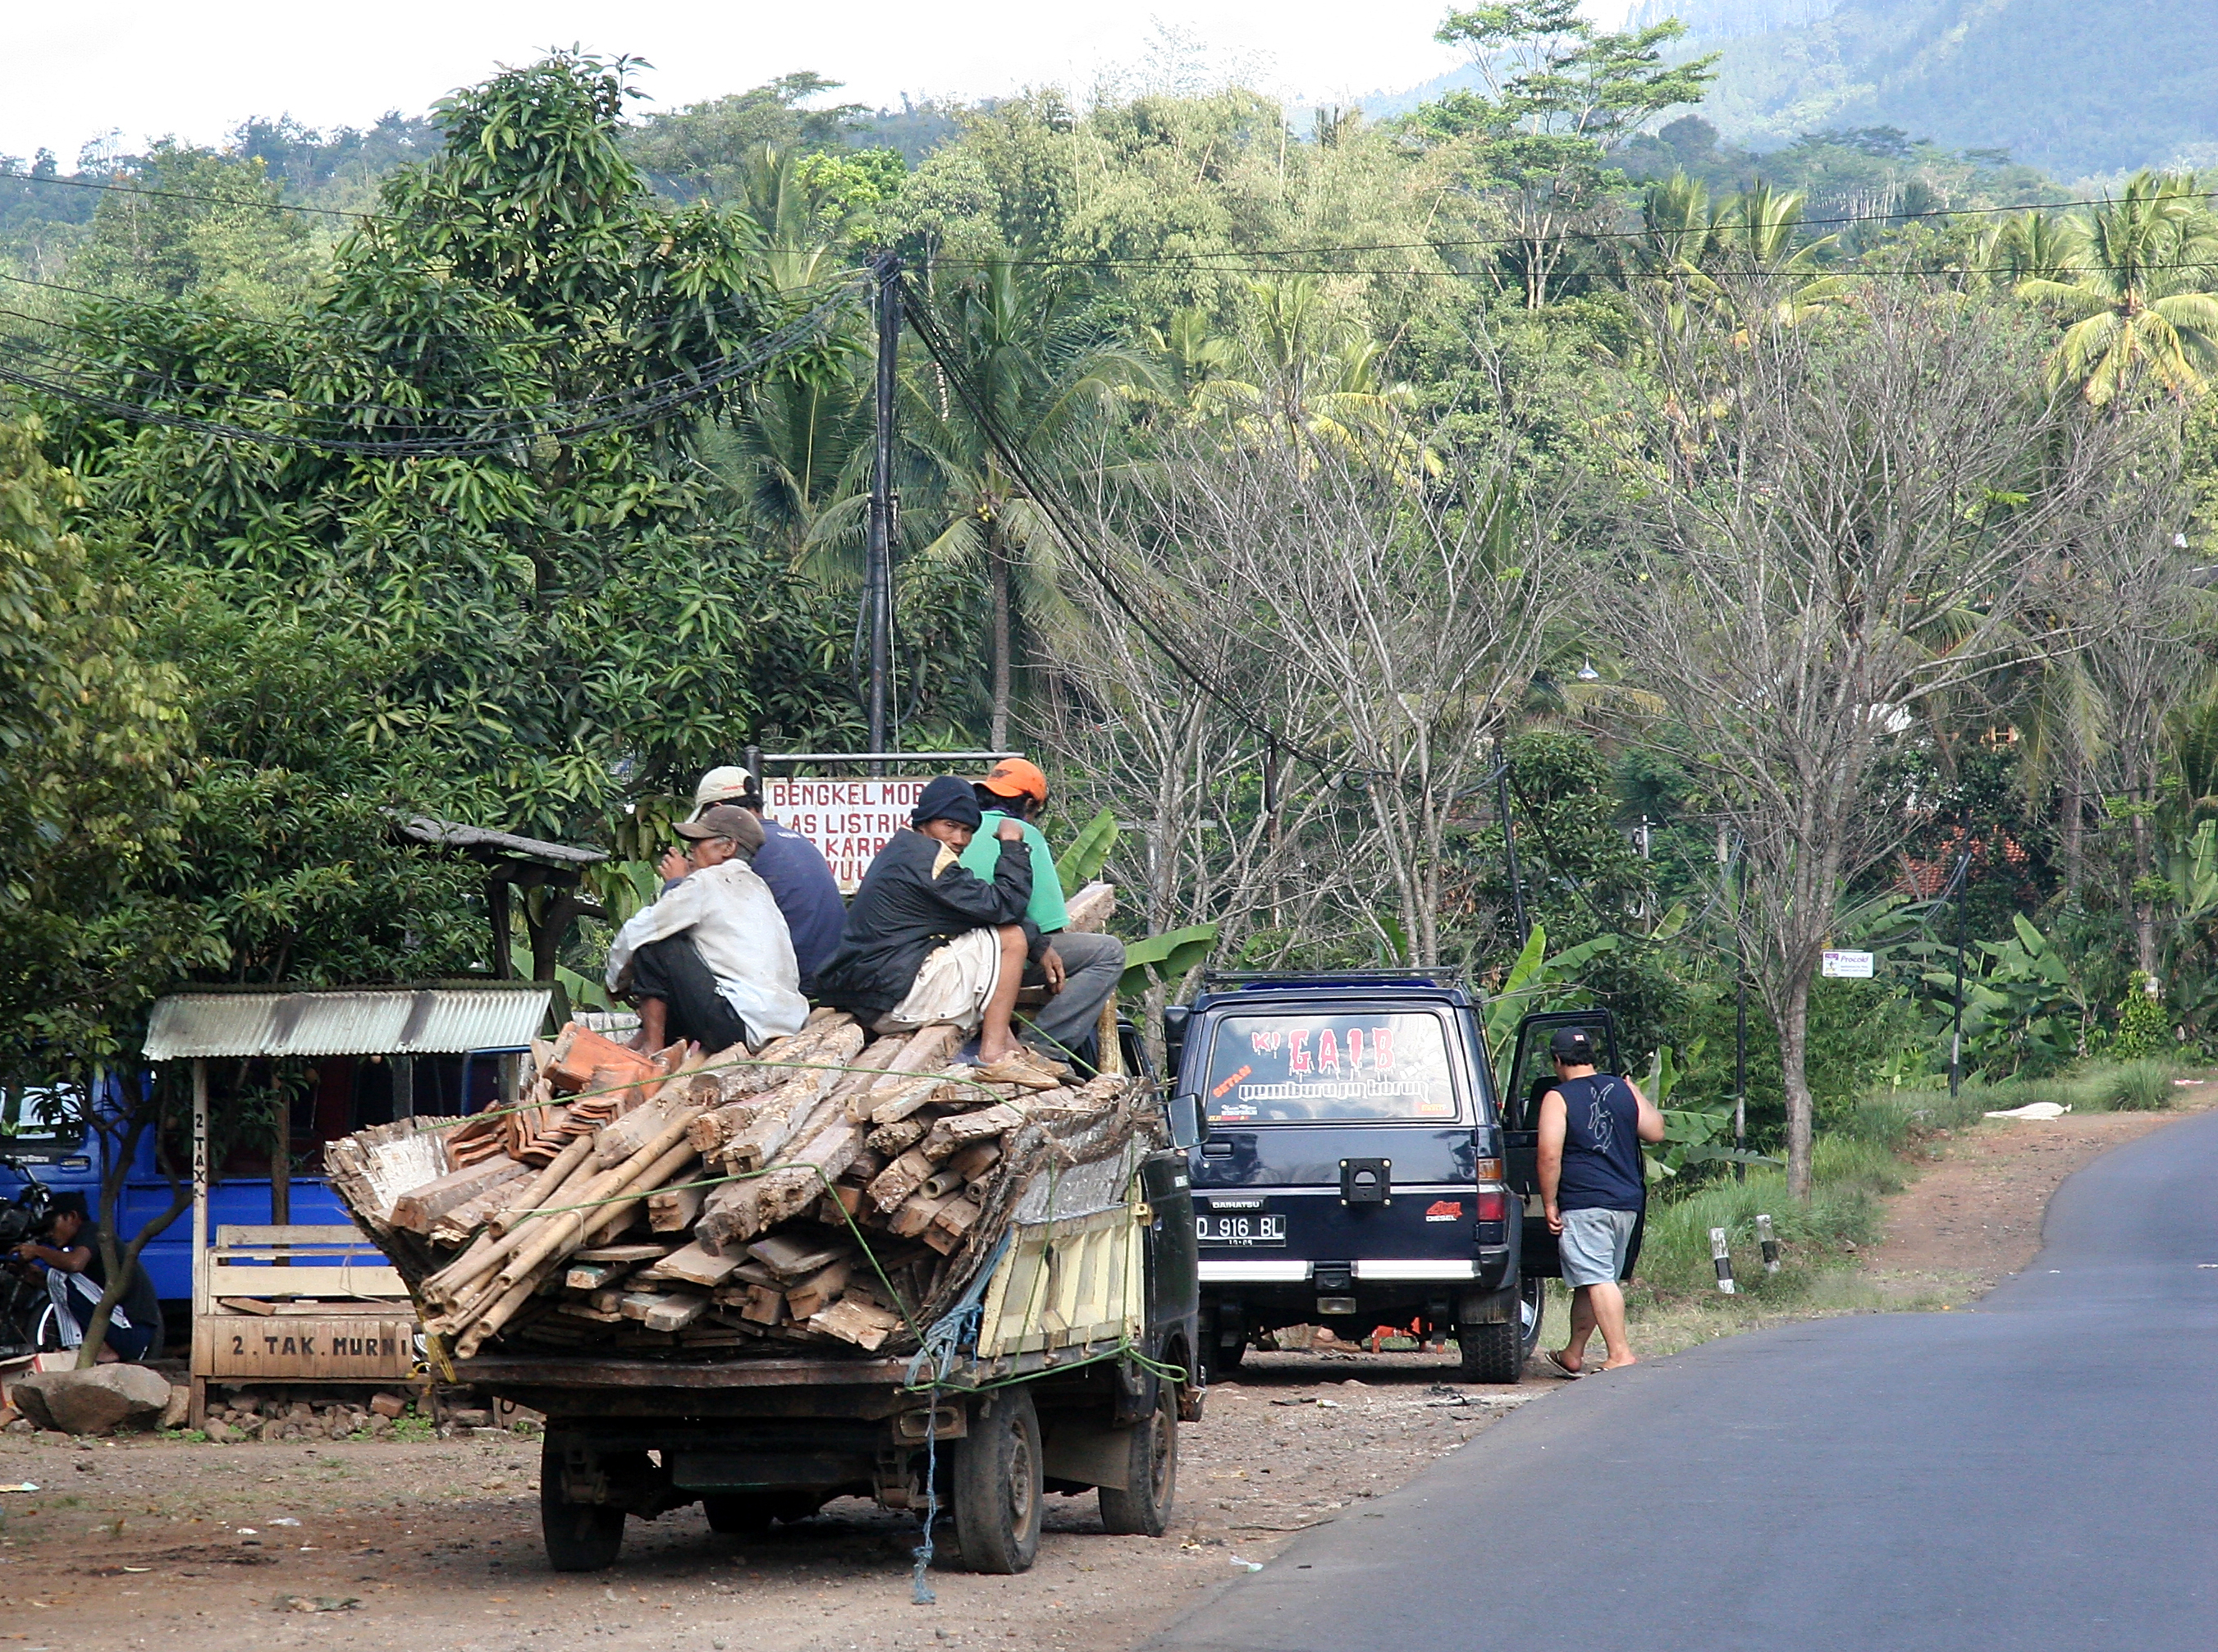 Roadside truck, Java Indonesia.jpg